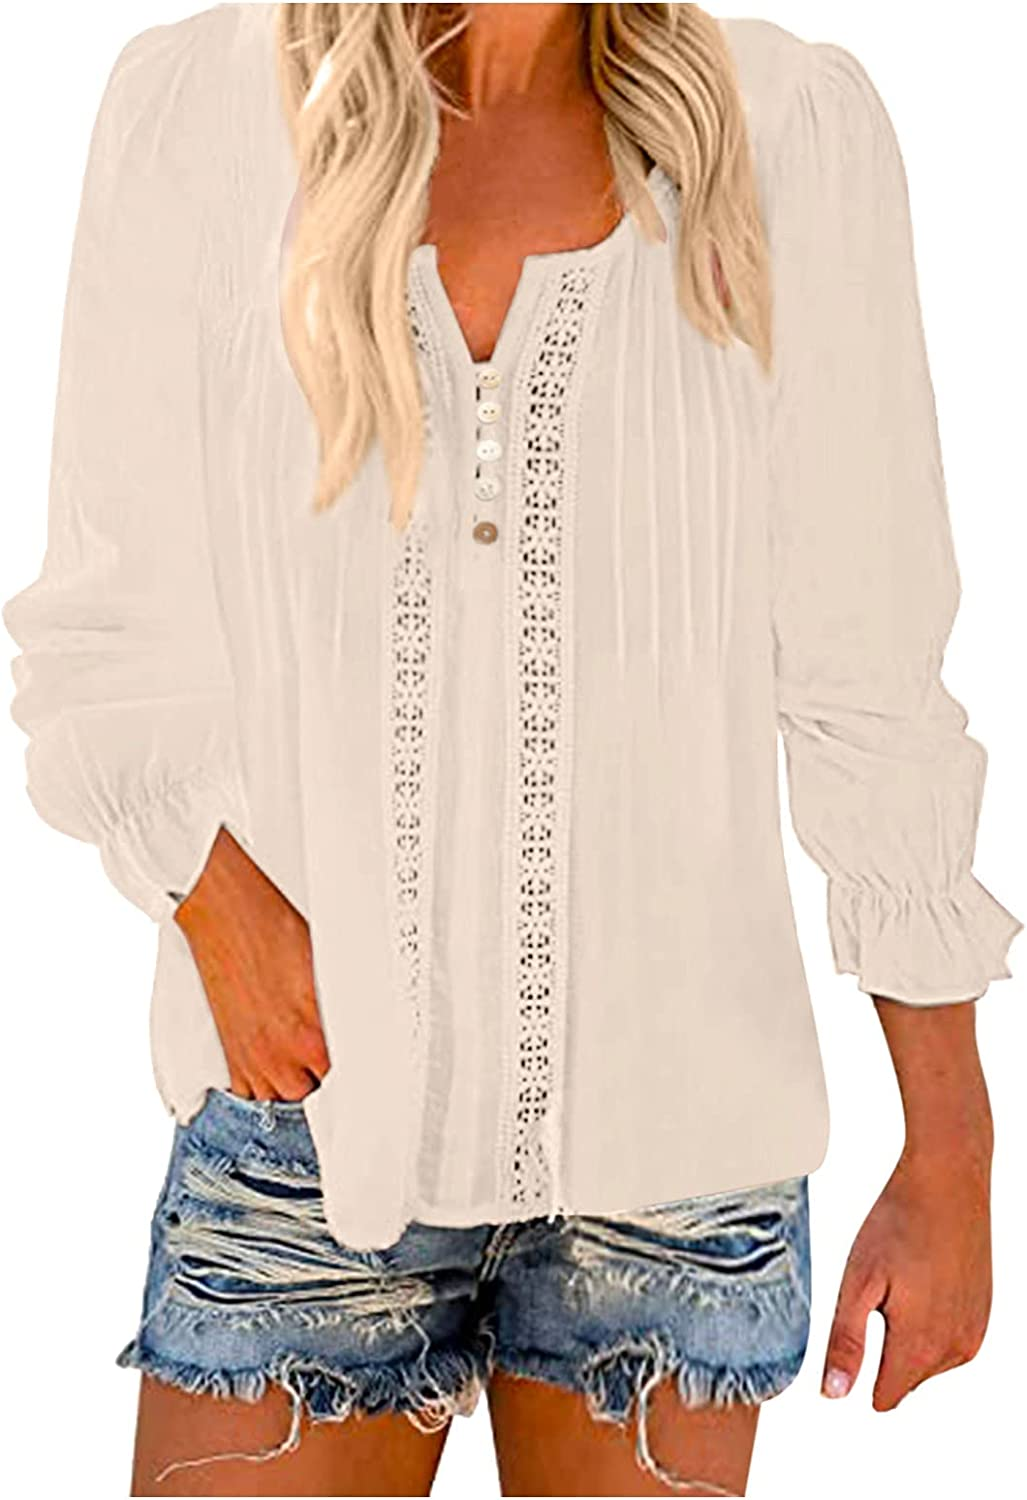 Womens Tops and blouses丨Casual Solid Button Long Sleeve V-Neck Fashion All-Match Top丨women Blouses and Tops Fashion